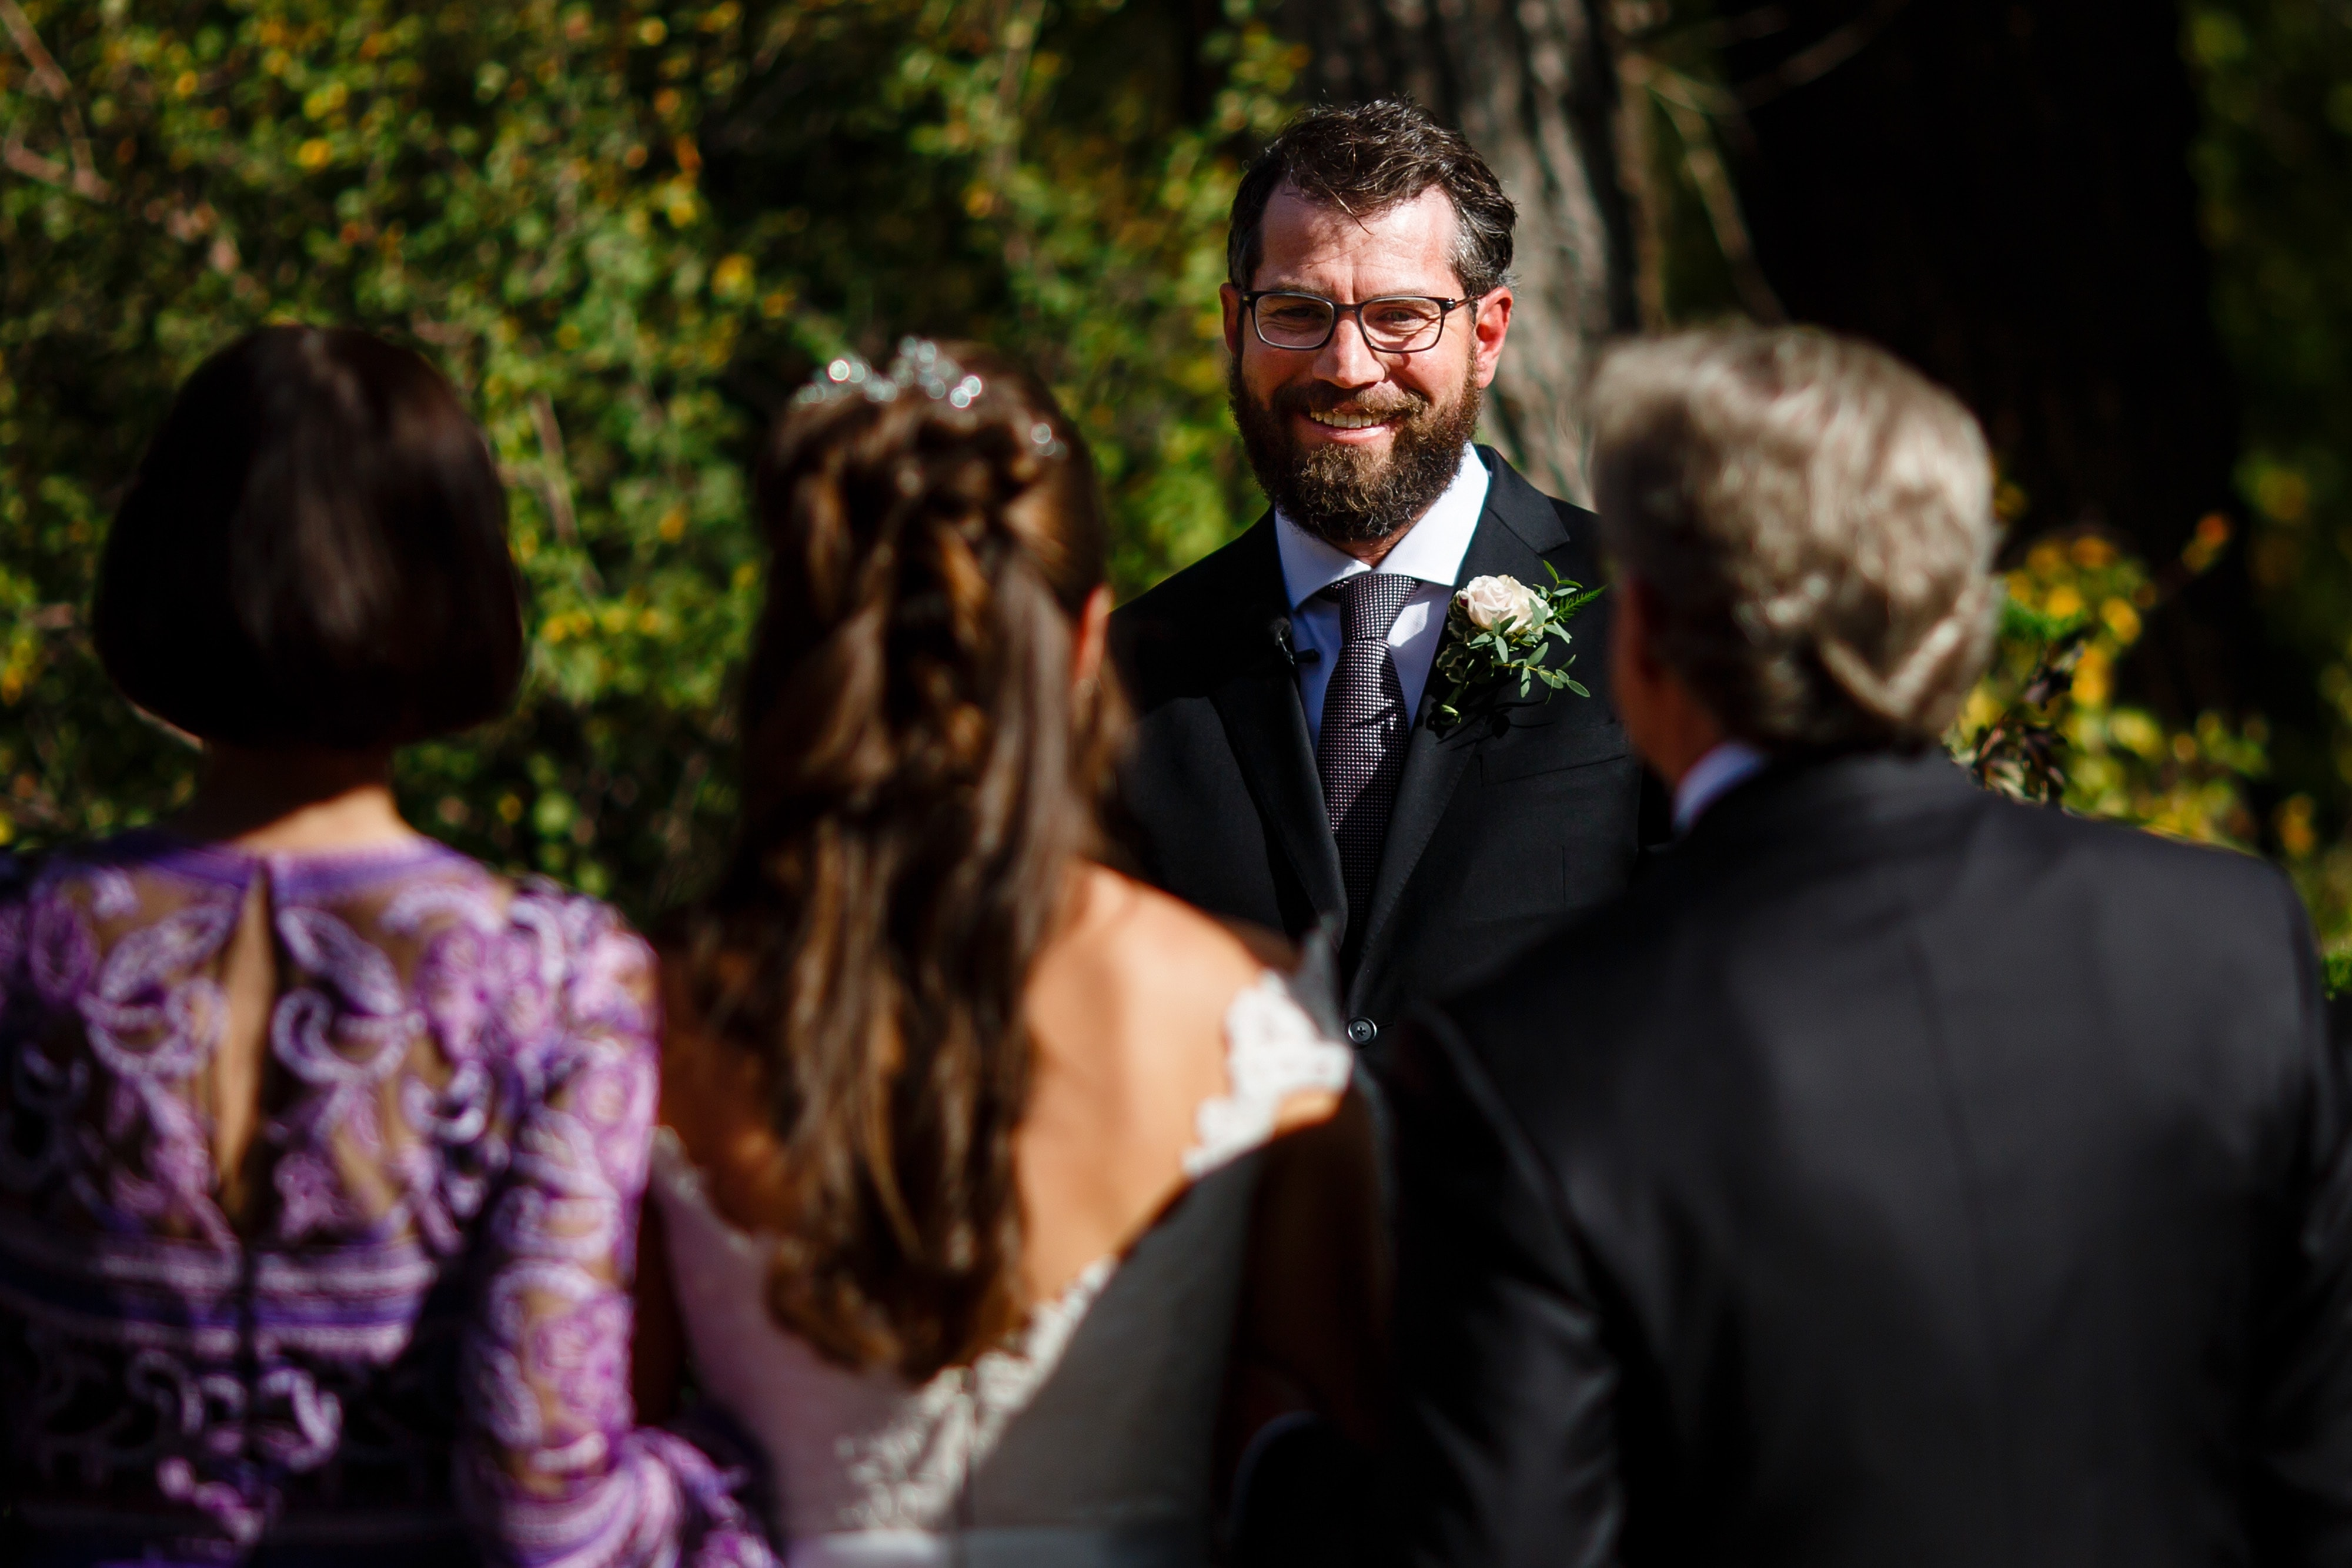 Daniel sees his bride for the first time